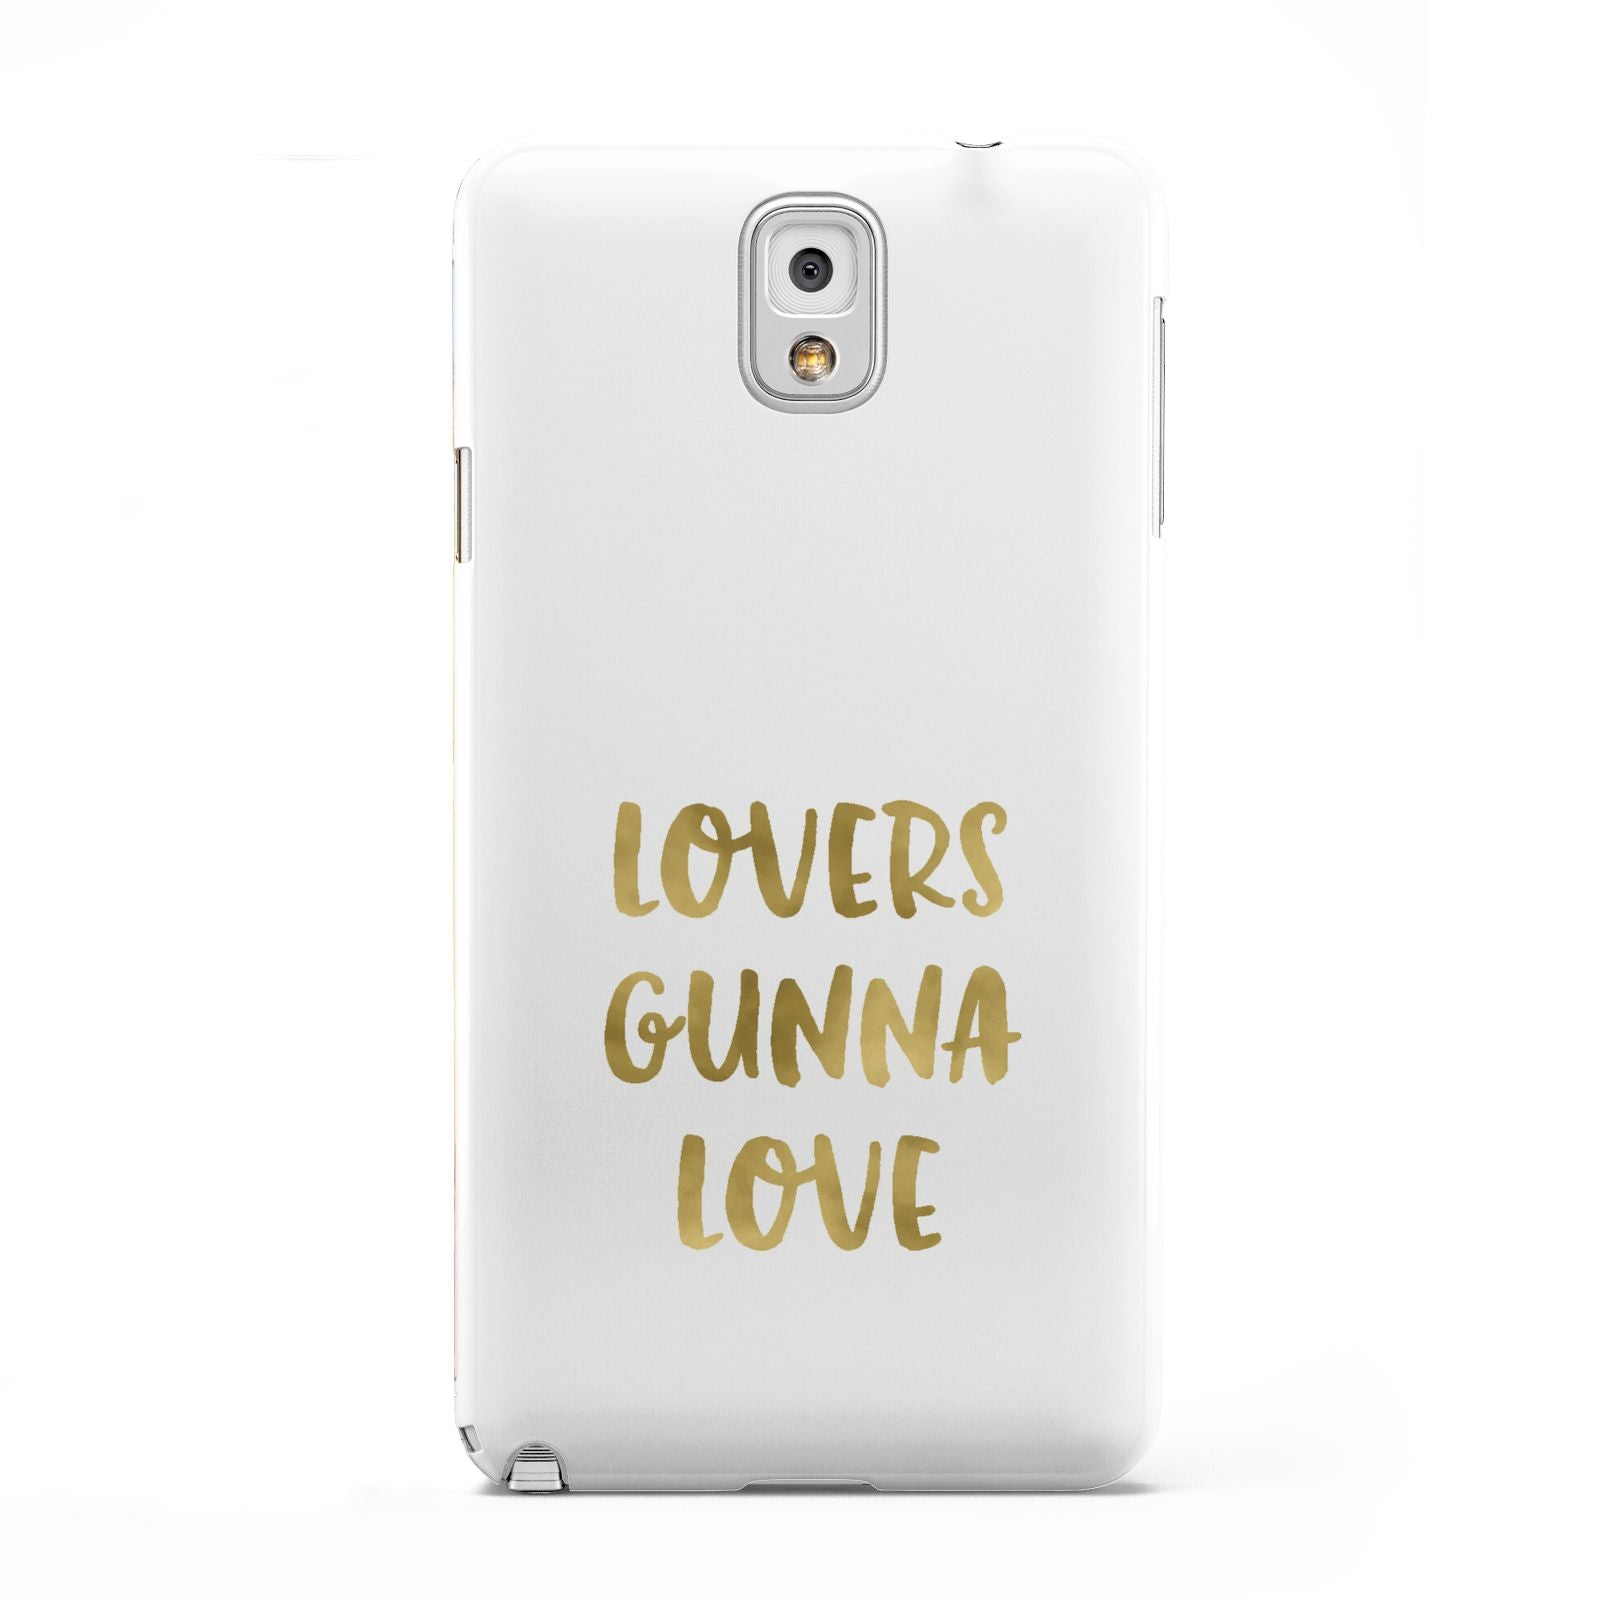 Lovers Gunna Love Real Gold Foil Samsung Galaxy Note 3 Case